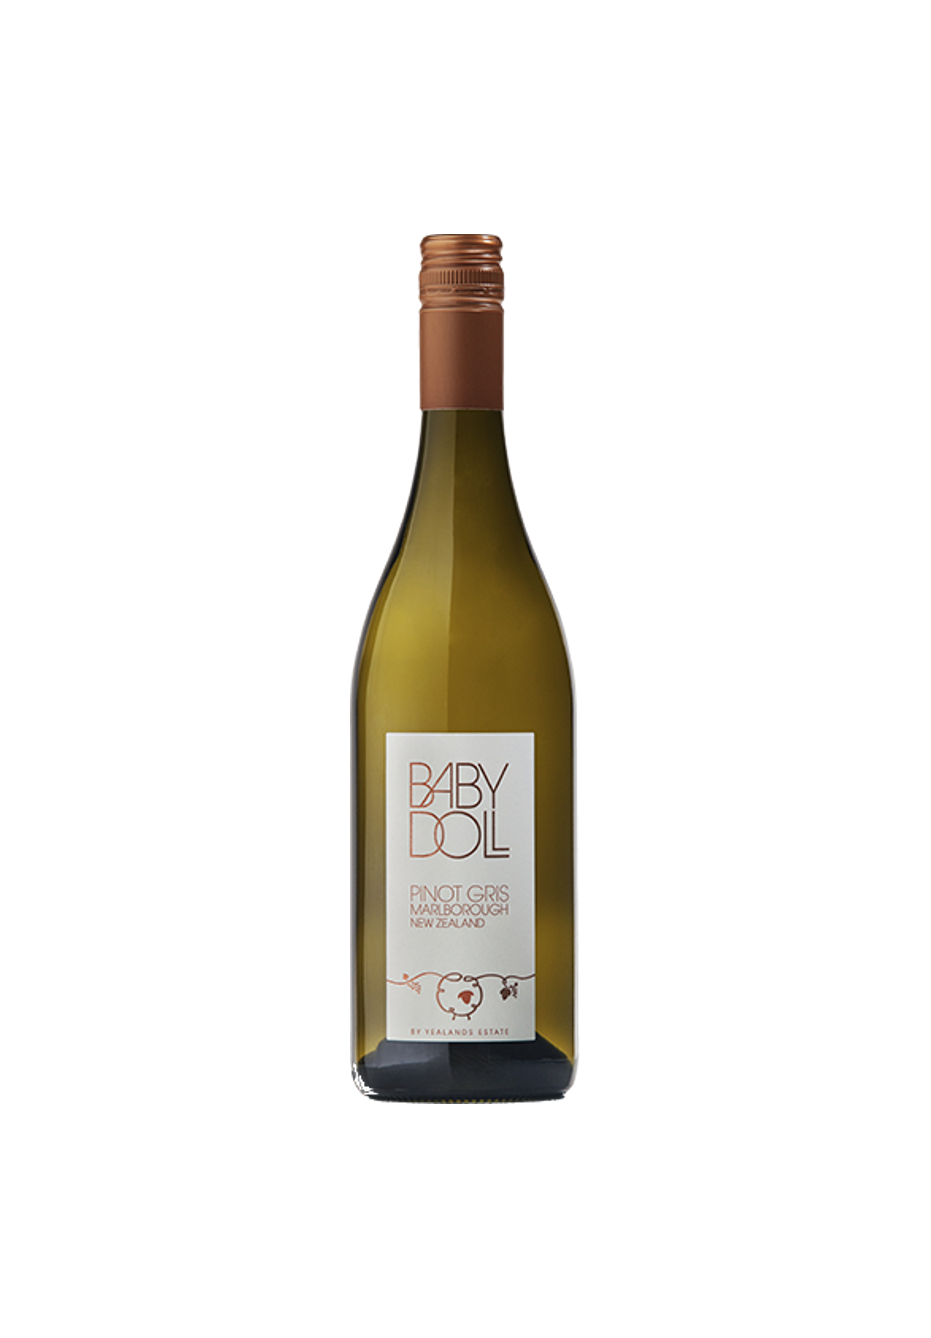 Baby Doll Marlborough Pinot Gris 2019